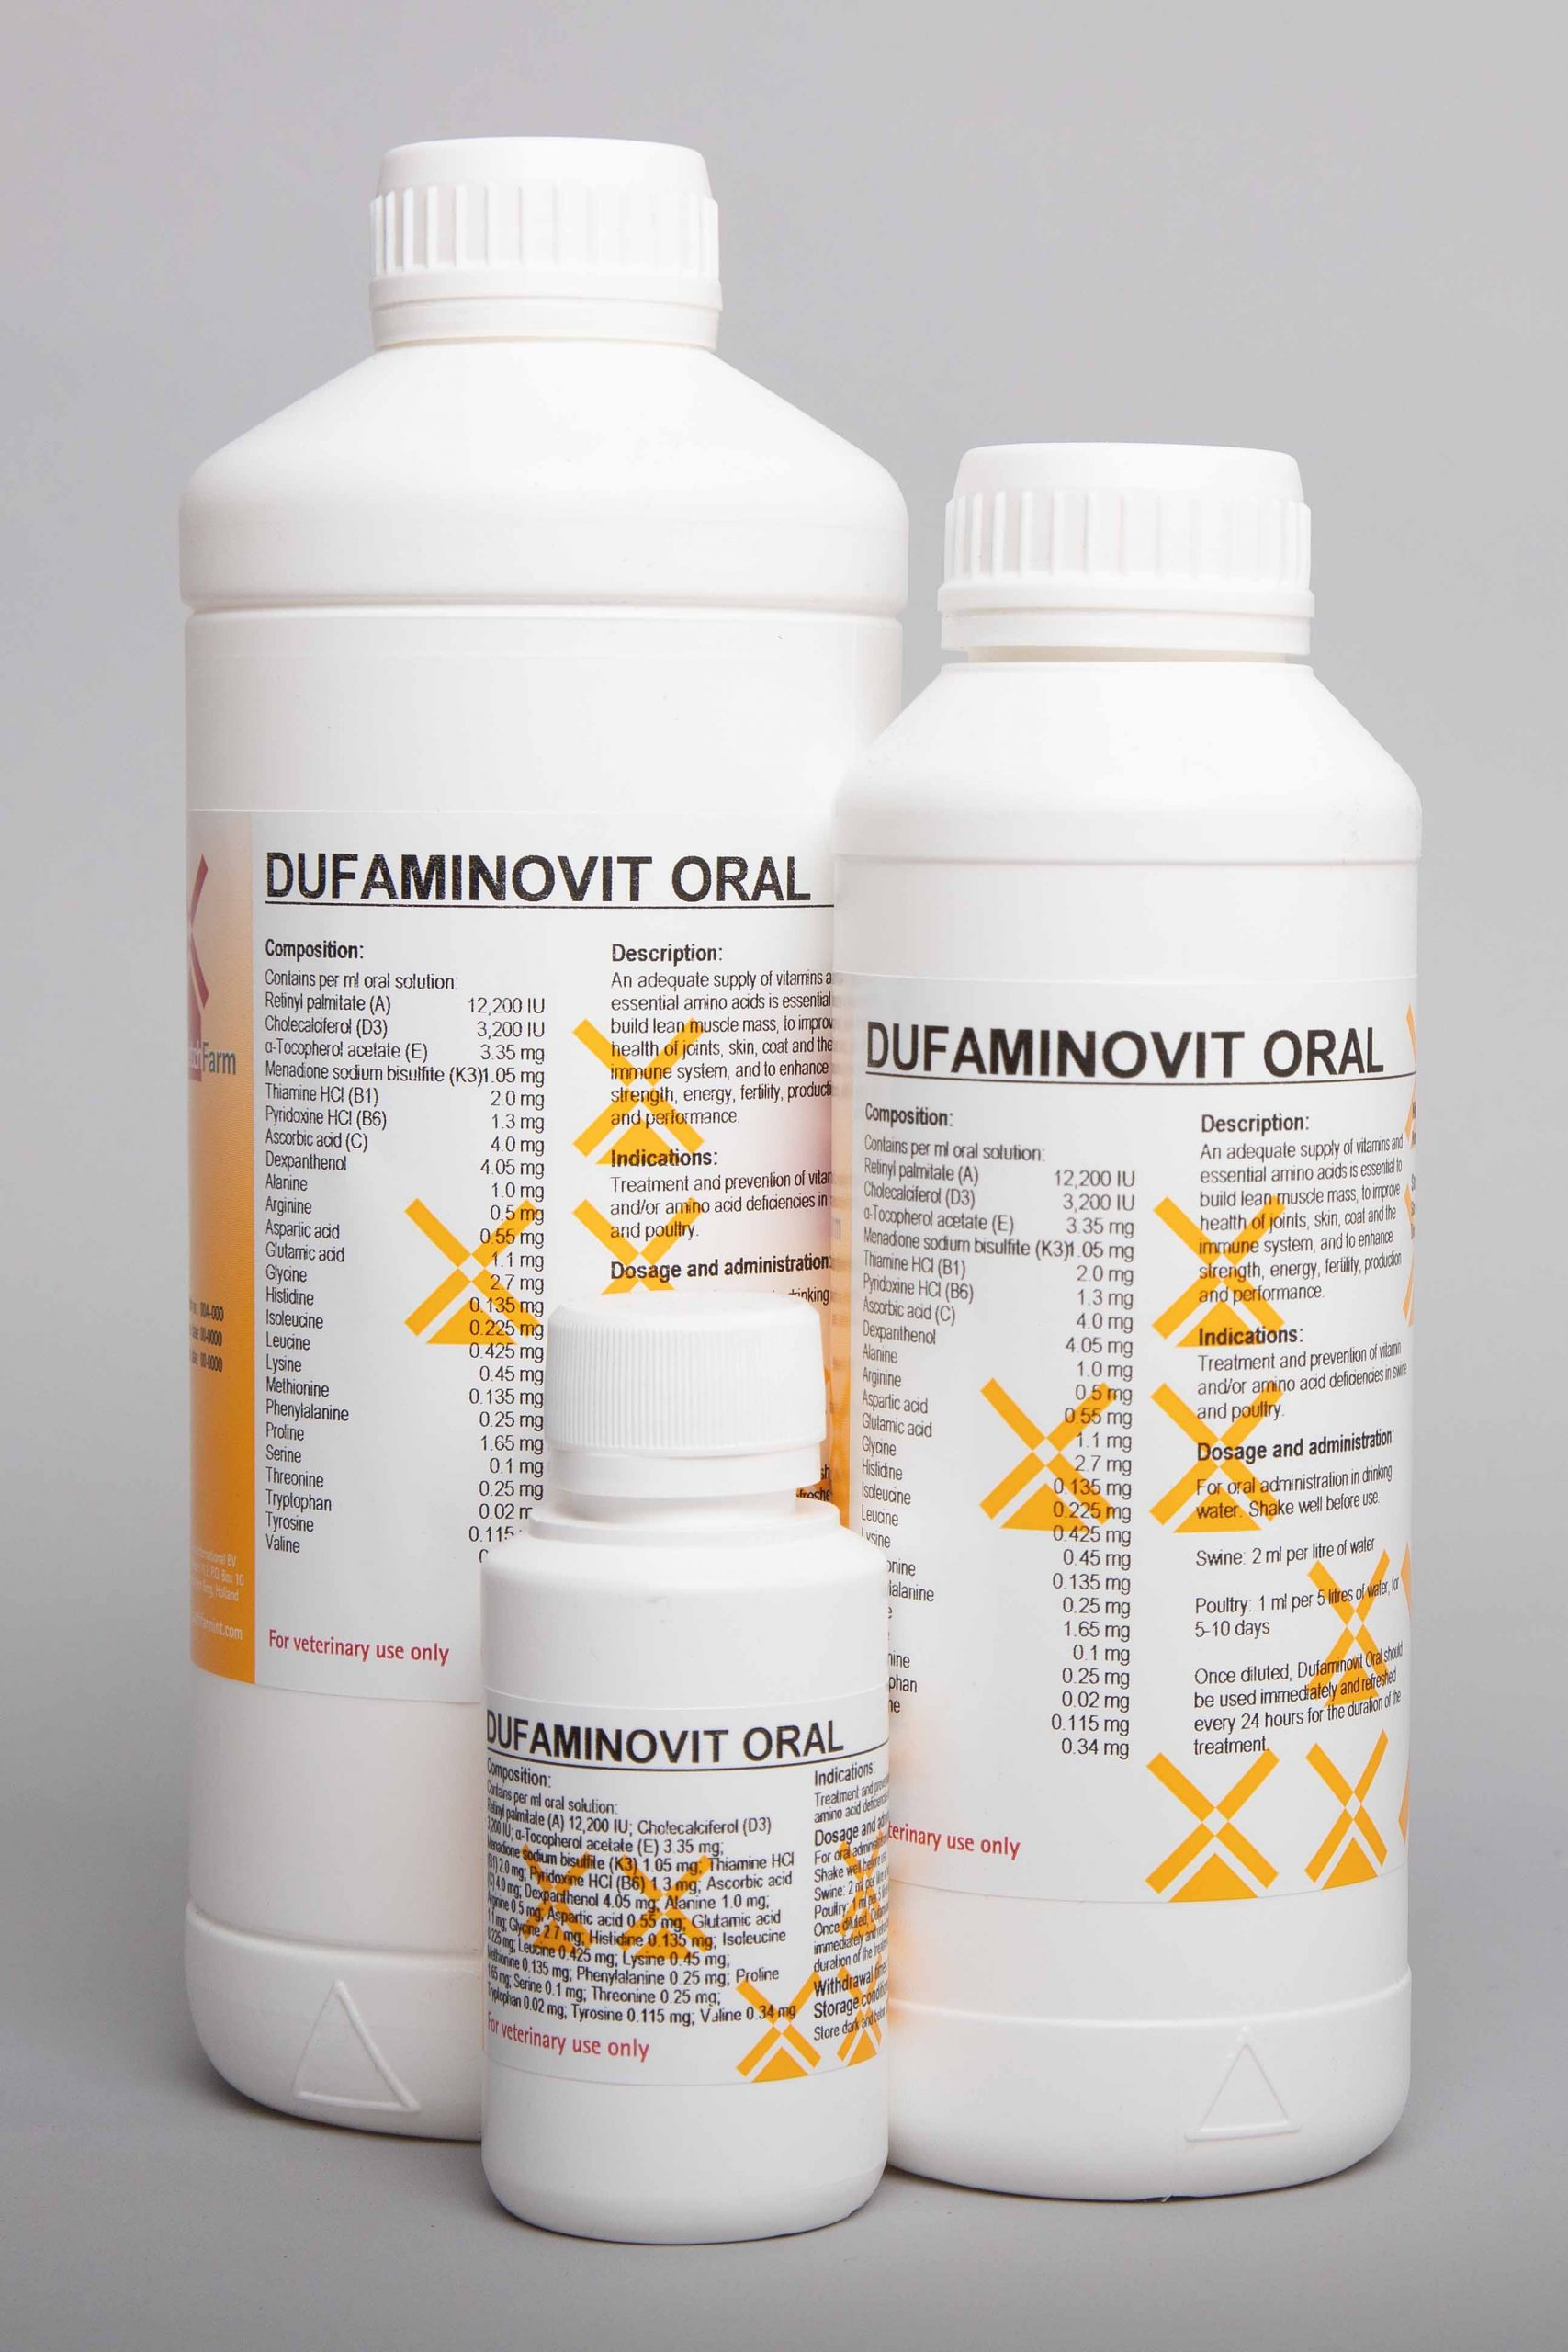 Dufaminovit Oral